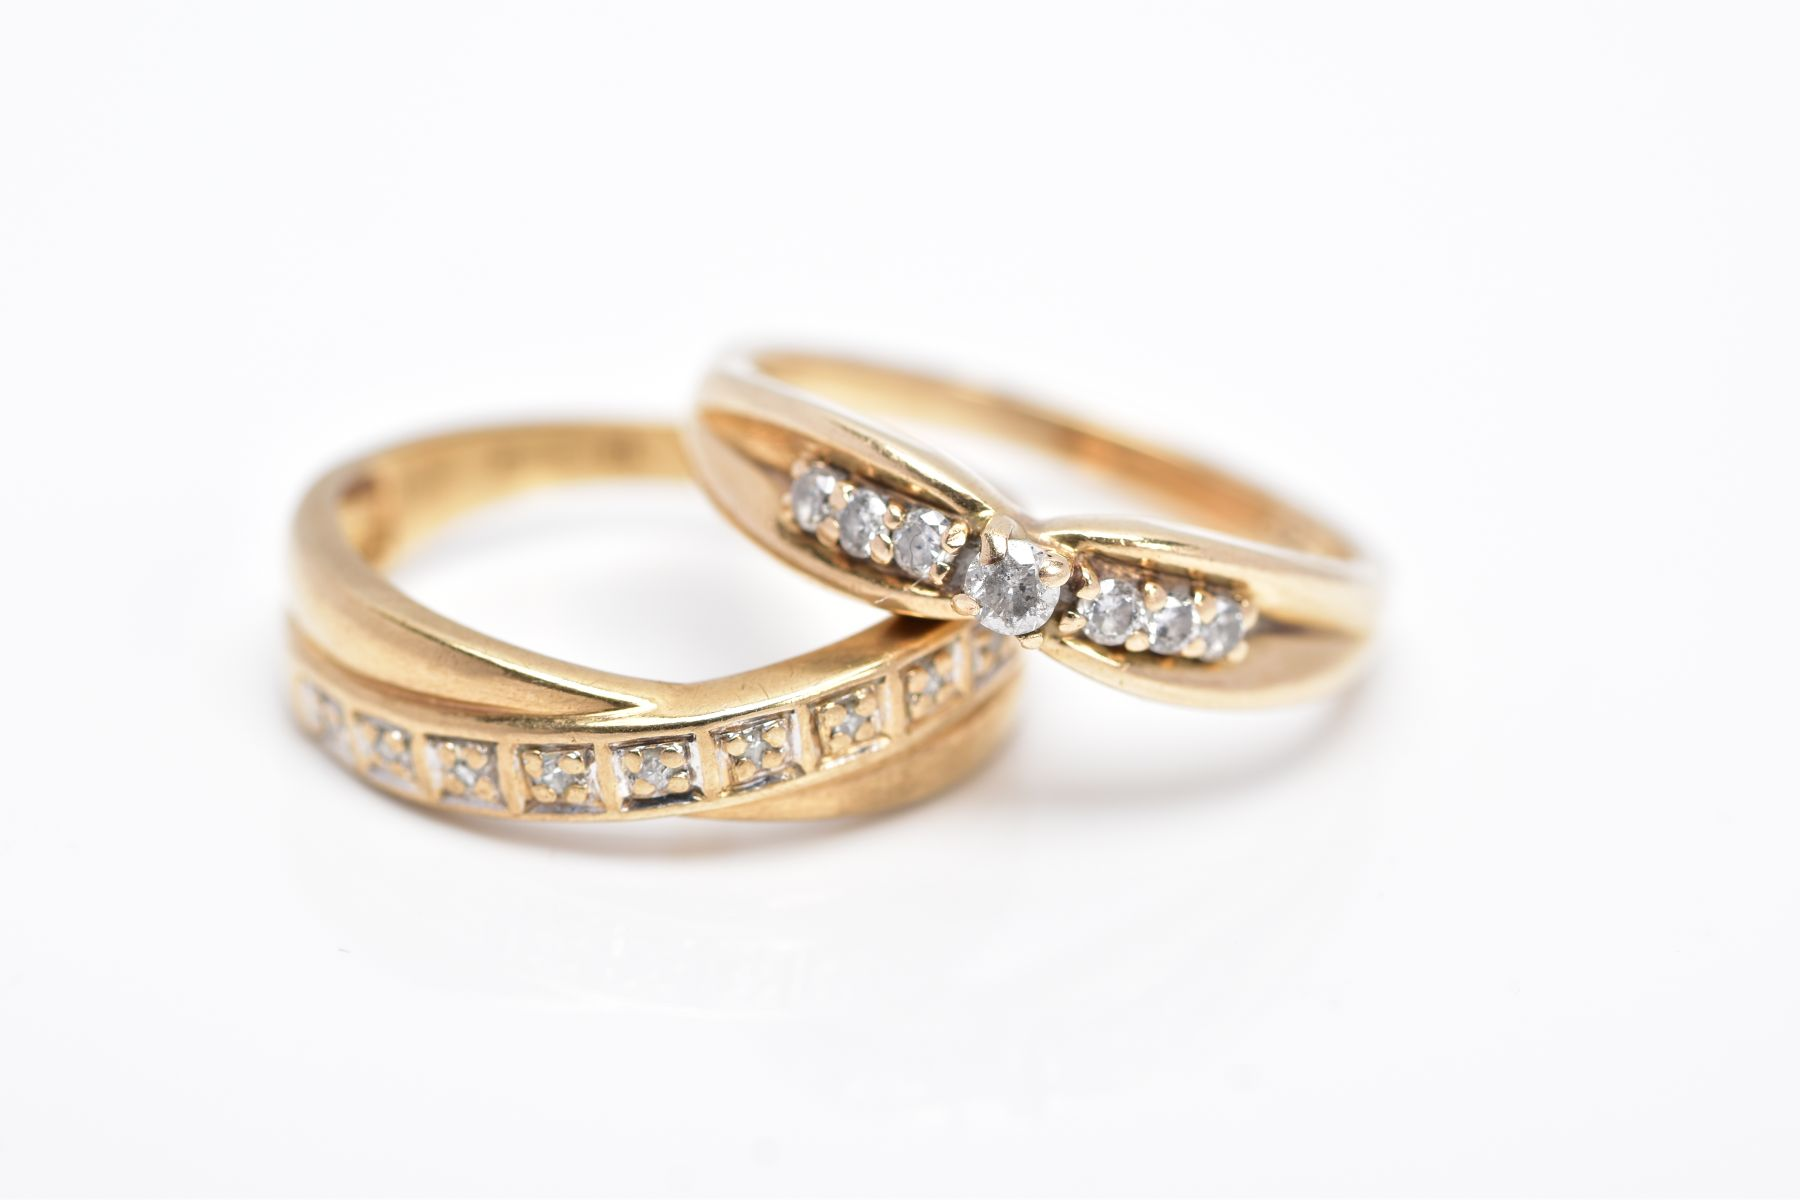 TWO 9CT GOLD DIAMOND RINGS, the first designed with a row of seven round brilliant cut diamonds,